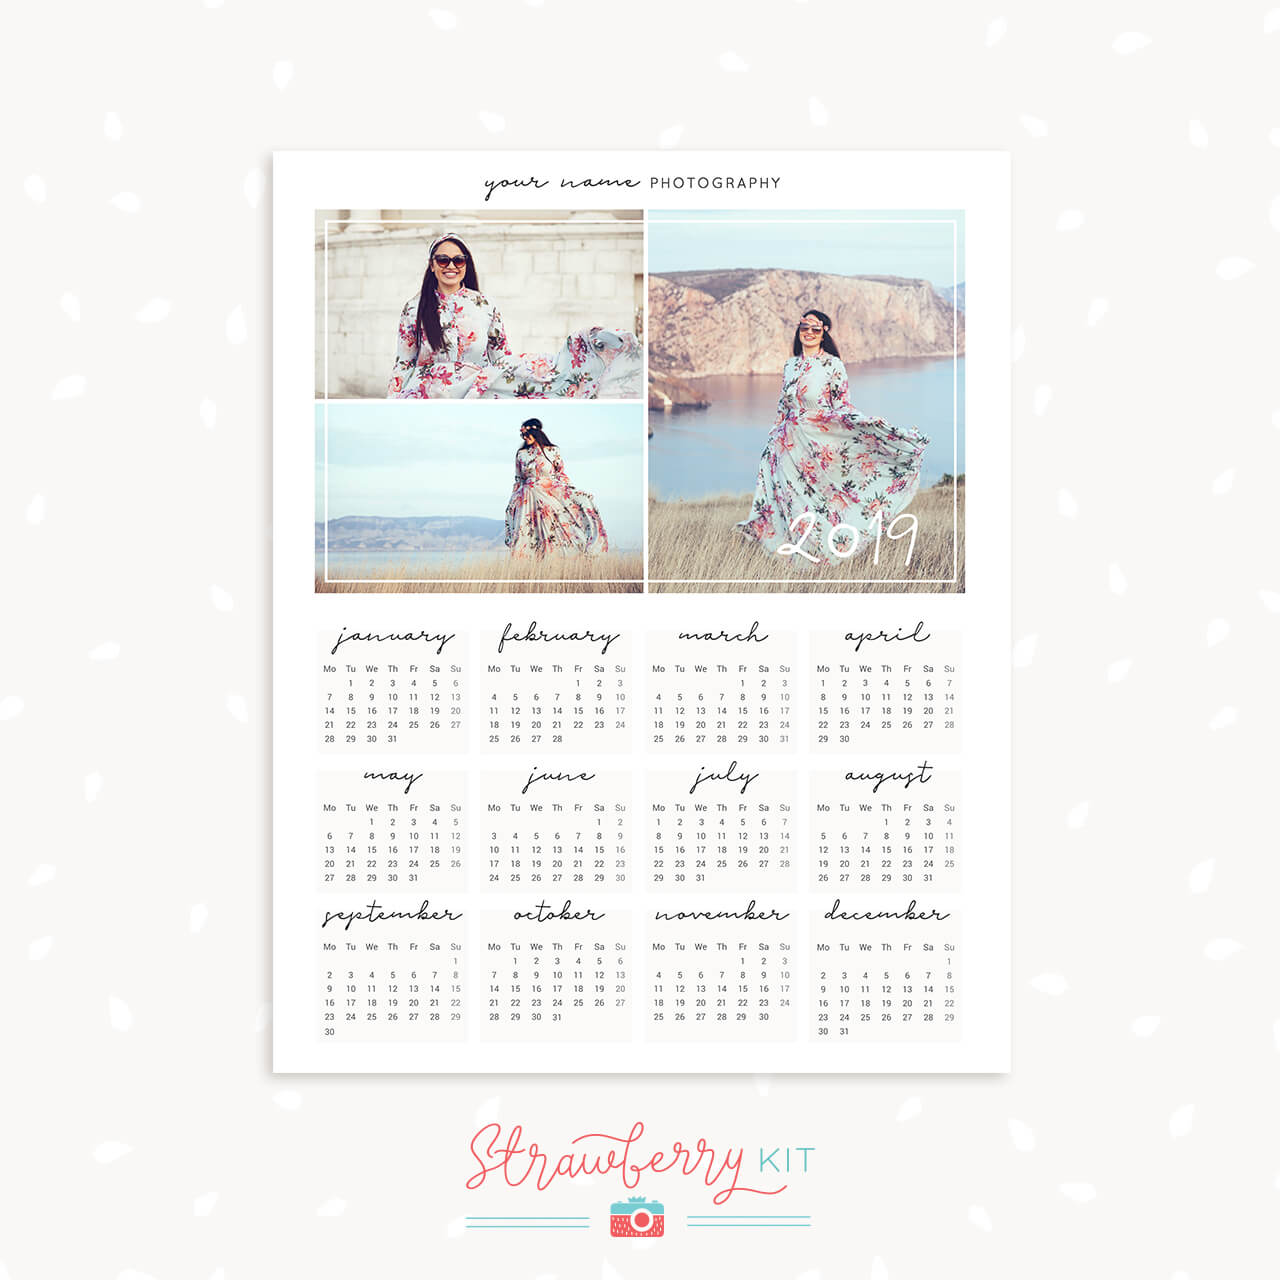 2019 Photography Collage Calendar Template Strawberry Kit